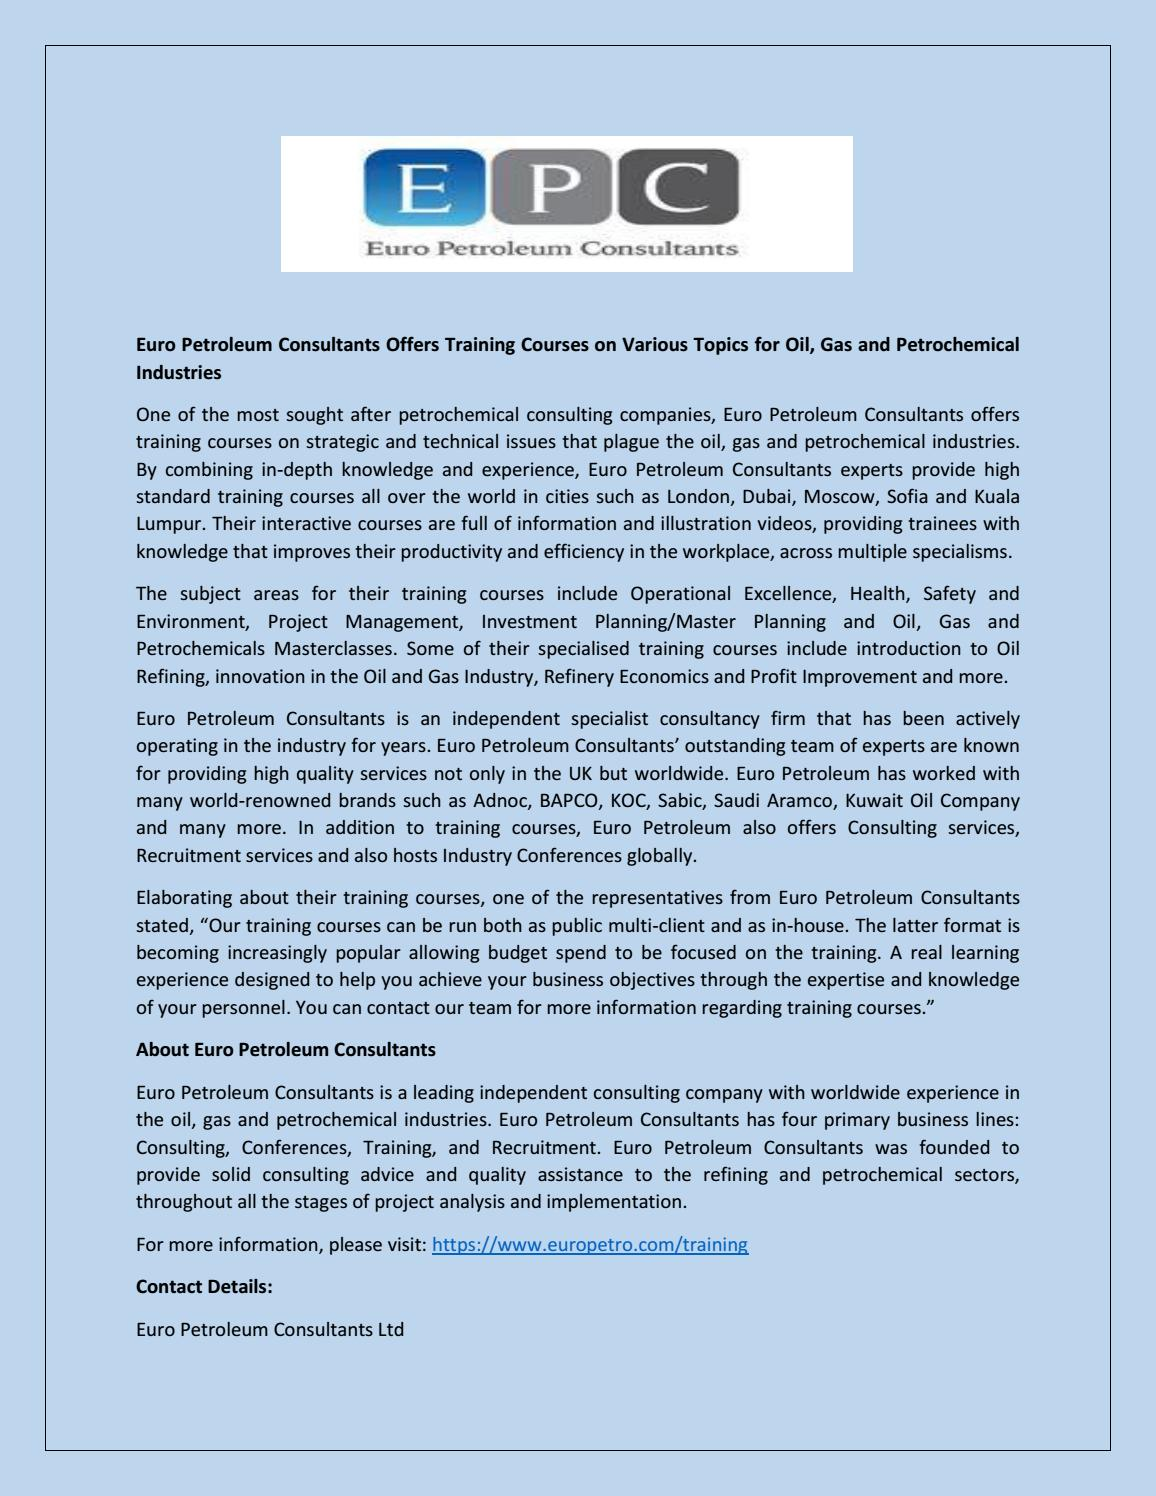 Euro Petroleum Consultants Offers Training Courses on Various Topics